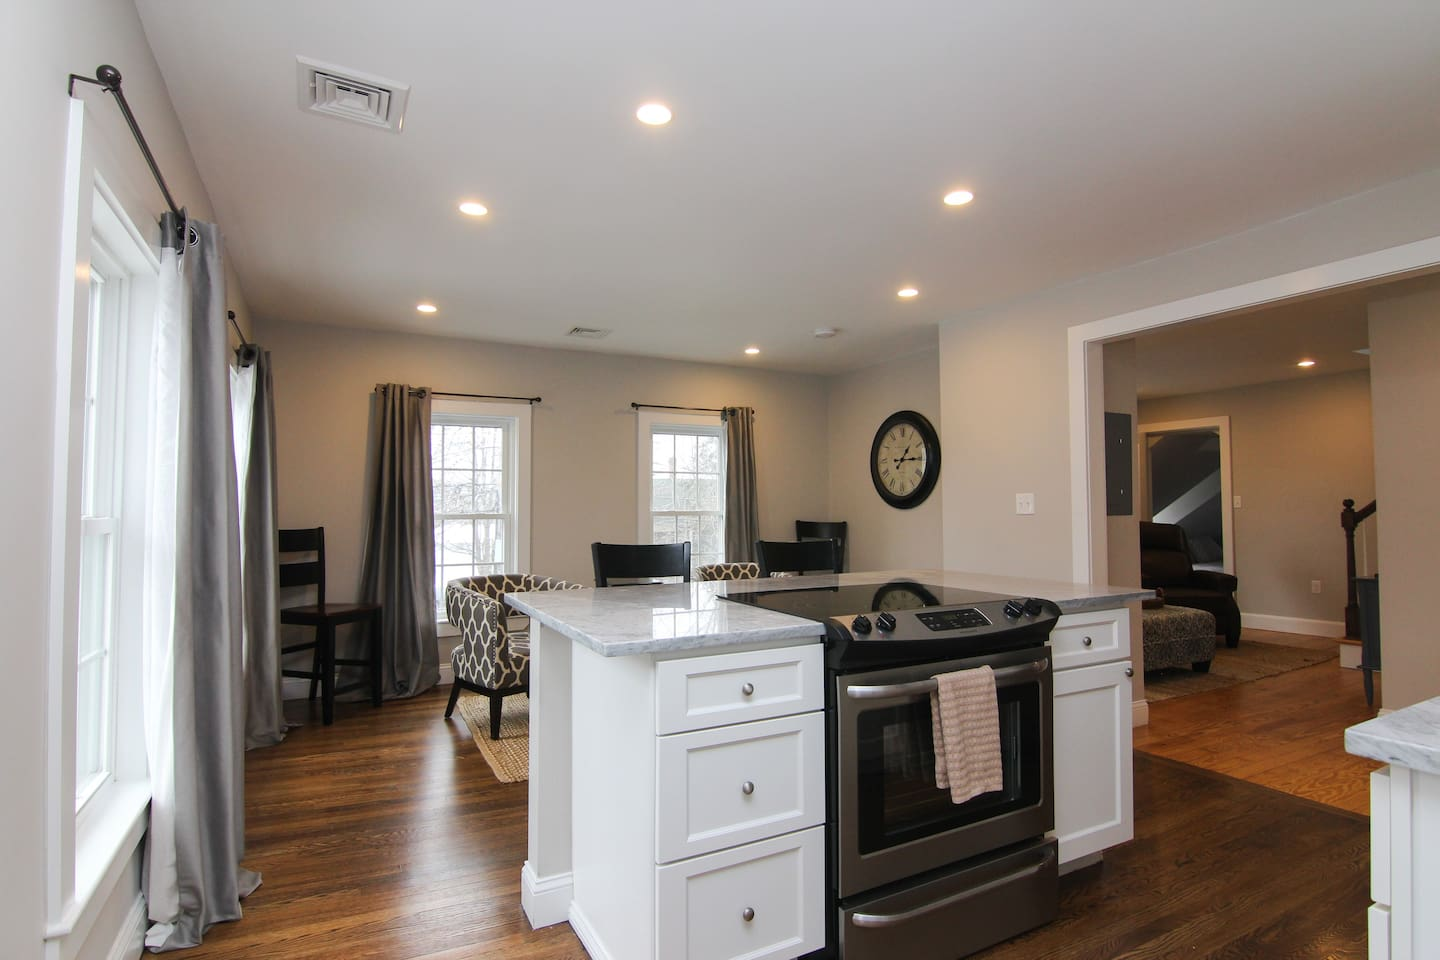 Open kitchen area with a view.